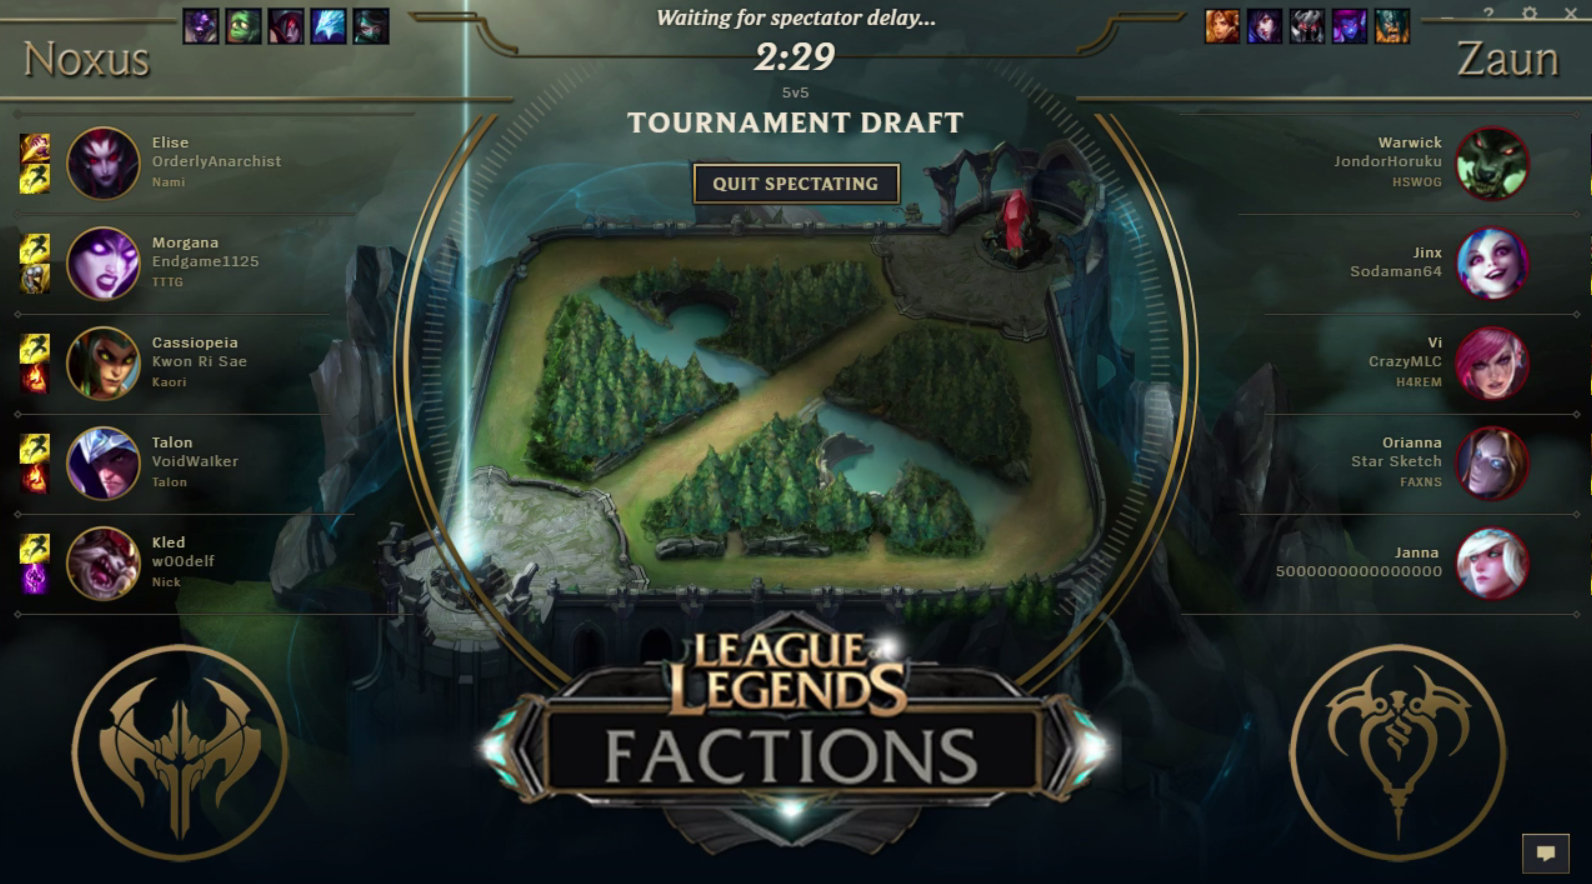 League of legends matchmaking s3